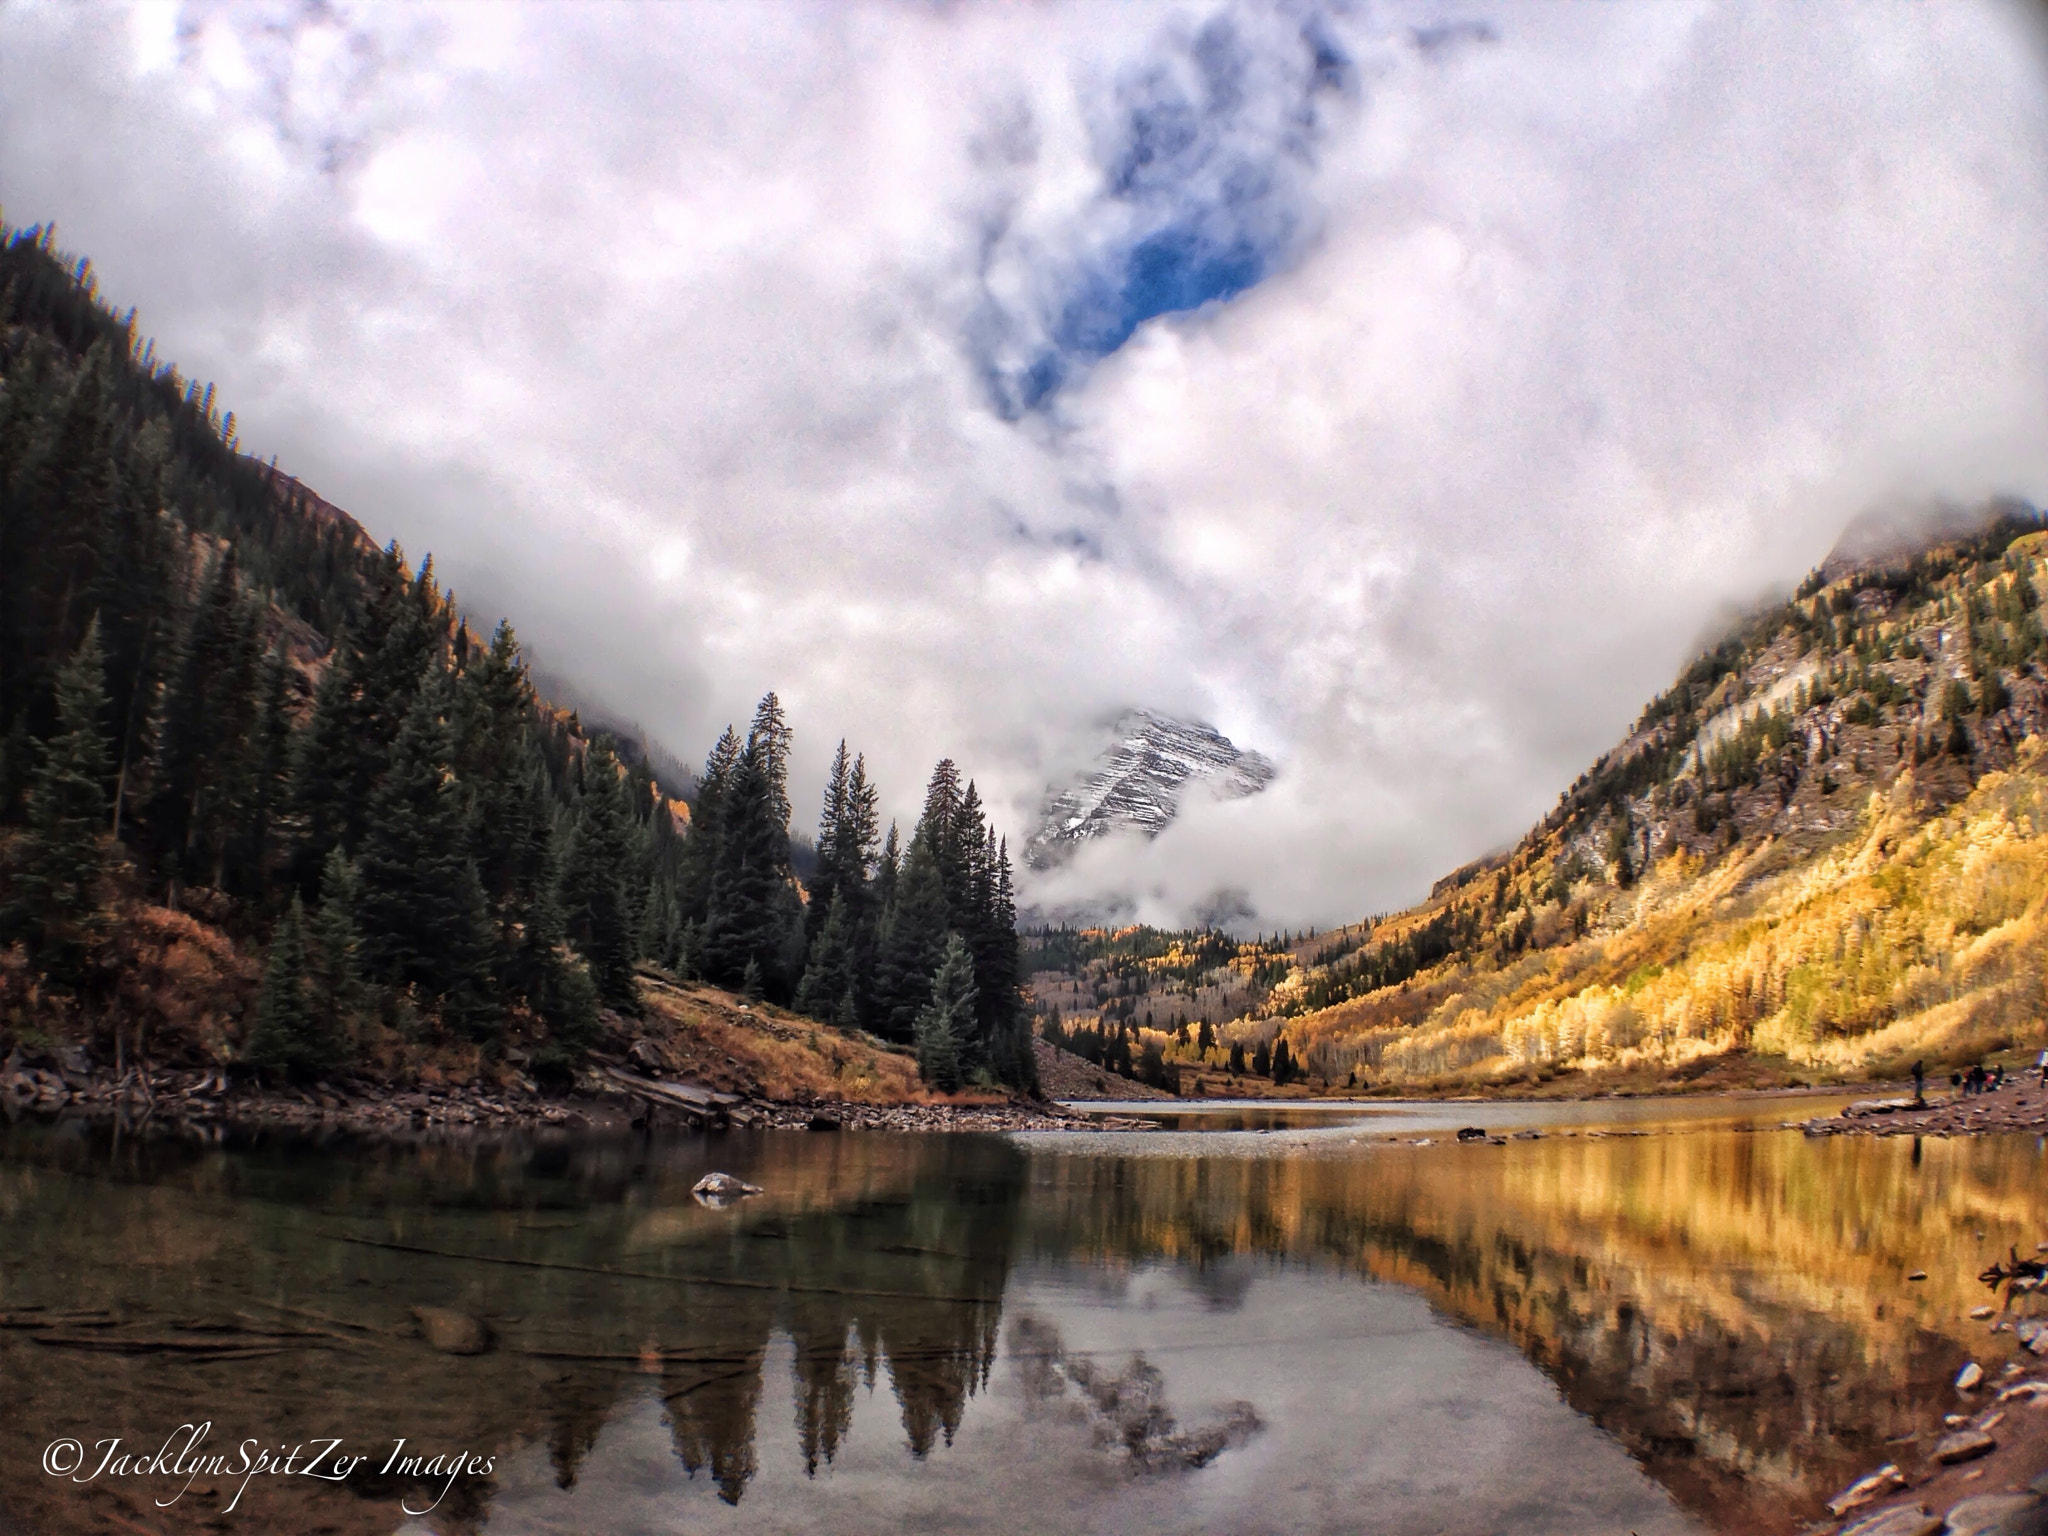 Photograph Maroon Bells Lake – Aspen, Colorado by Jacklyn Spitzer on 500px